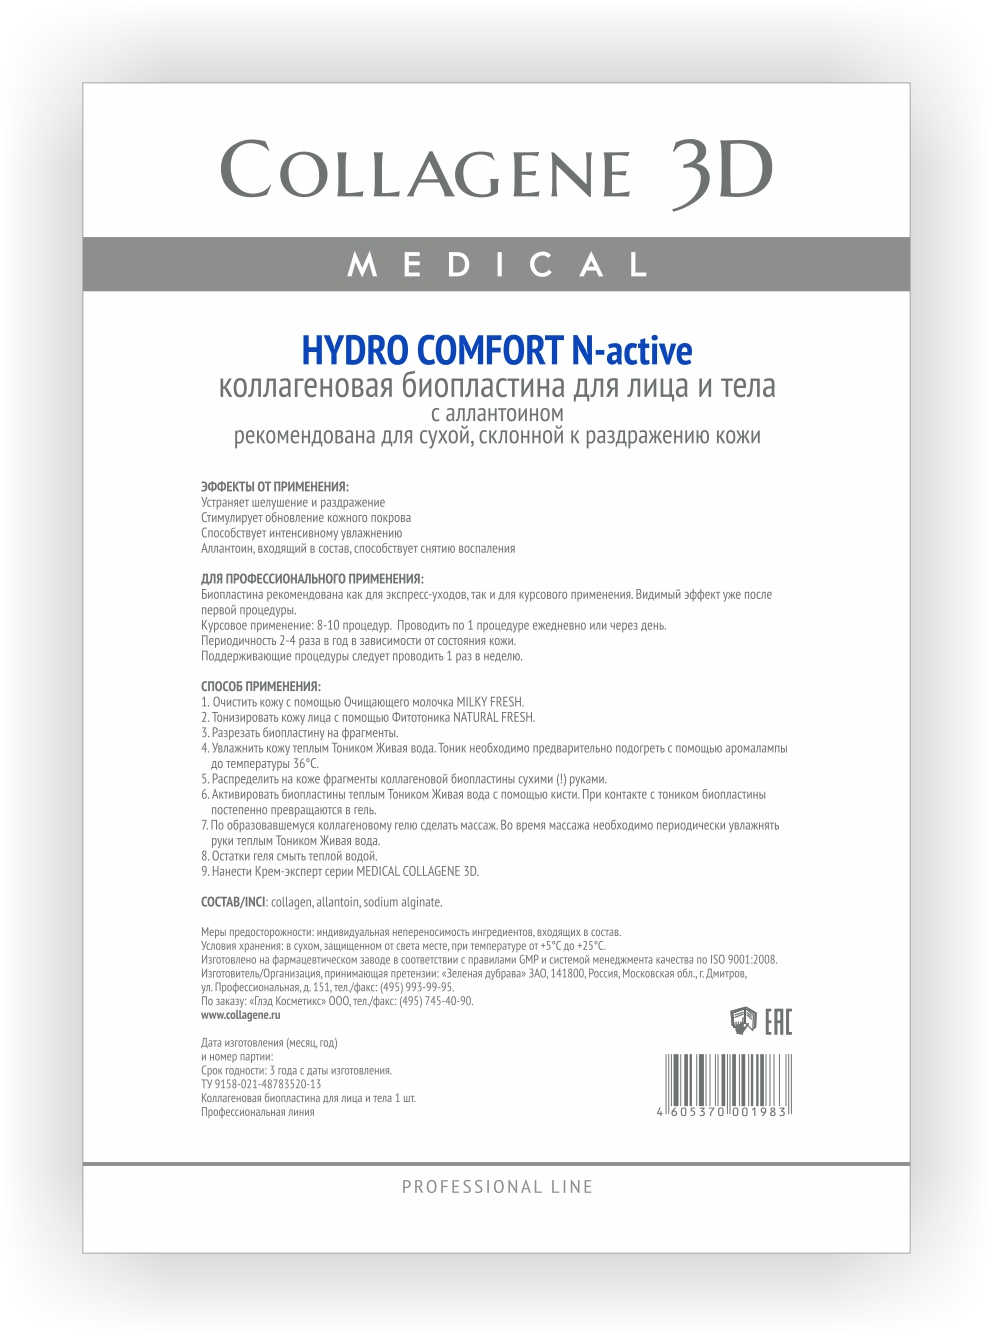 MEDICAL COLLAGENE 3D Биопластины коллагеновые с аллантоином для лица и тела Hydro Comfort А4